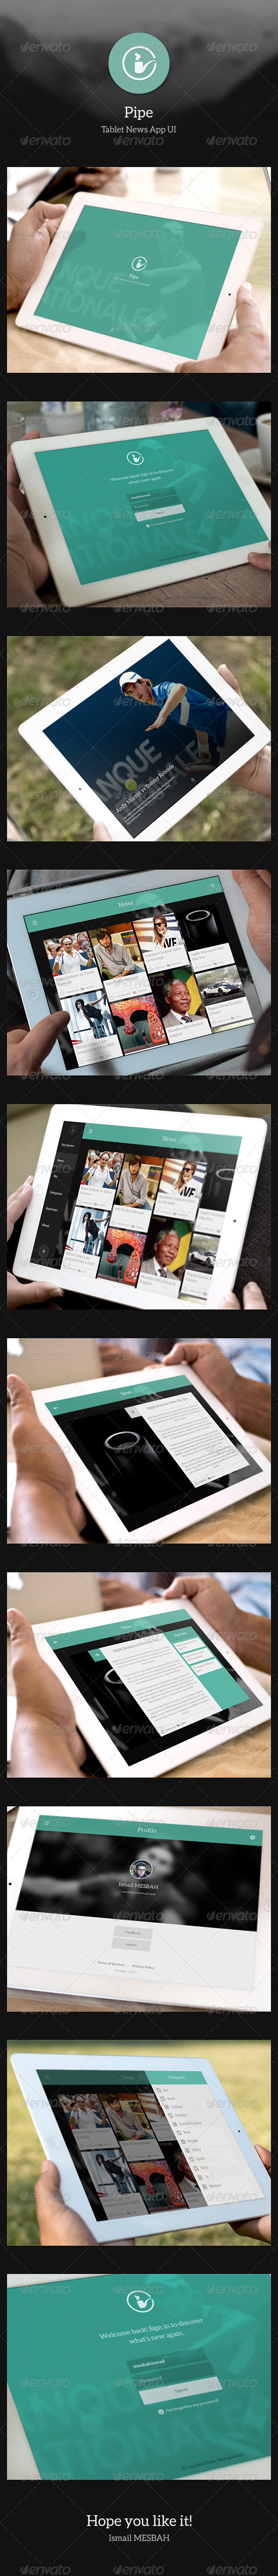 GraphicRiver Tablet News App UI Pipe 5087267